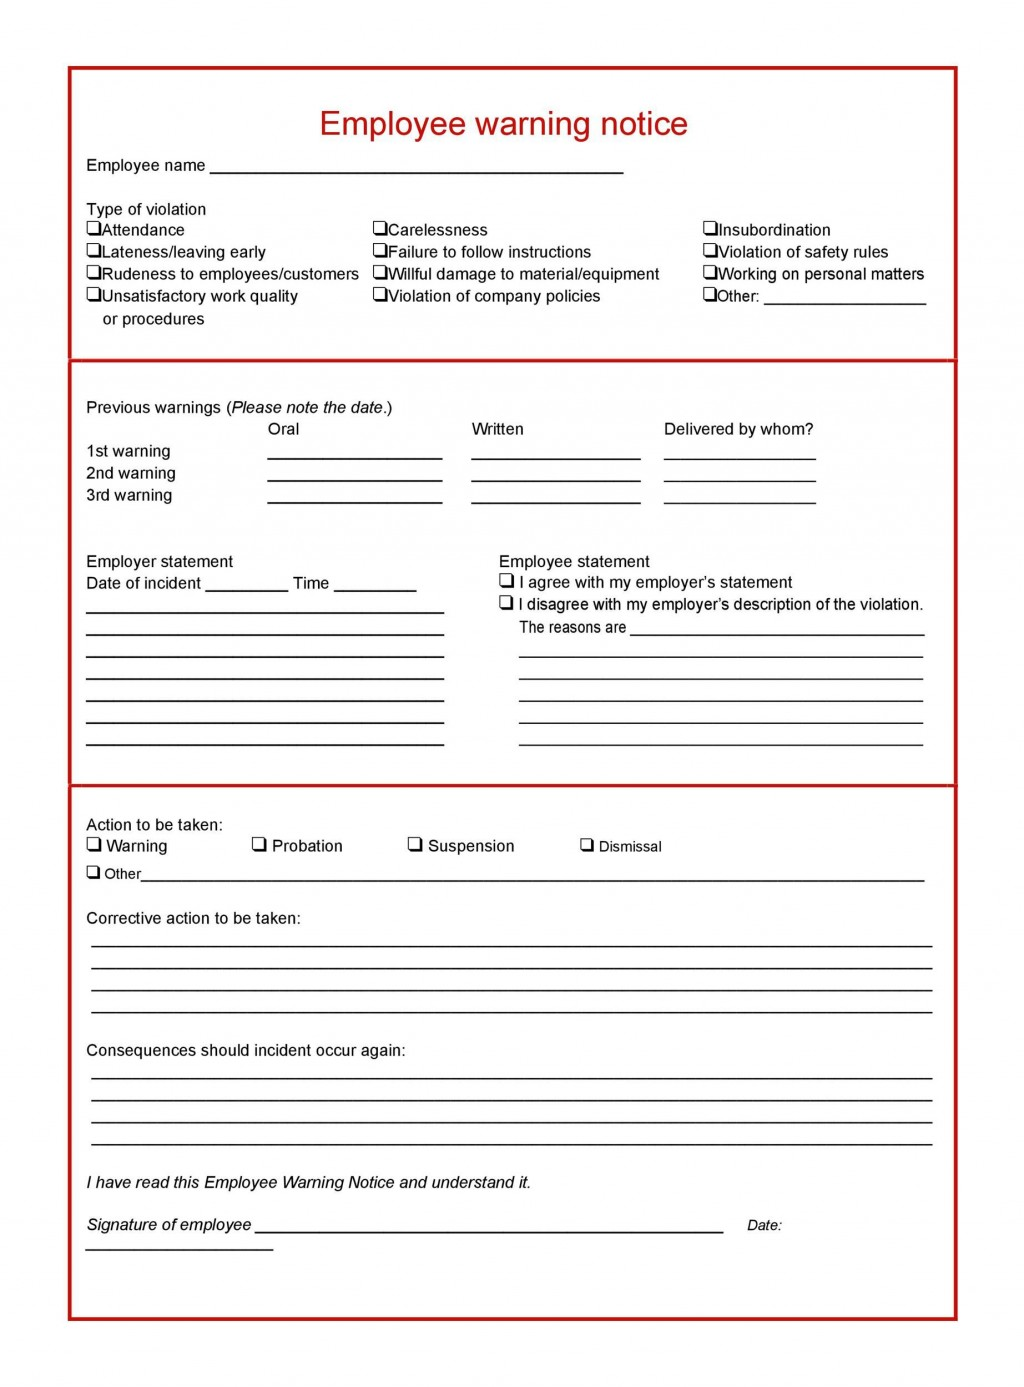 006 Breathtaking Employee Warning Notice Template Word Highest Quality Large